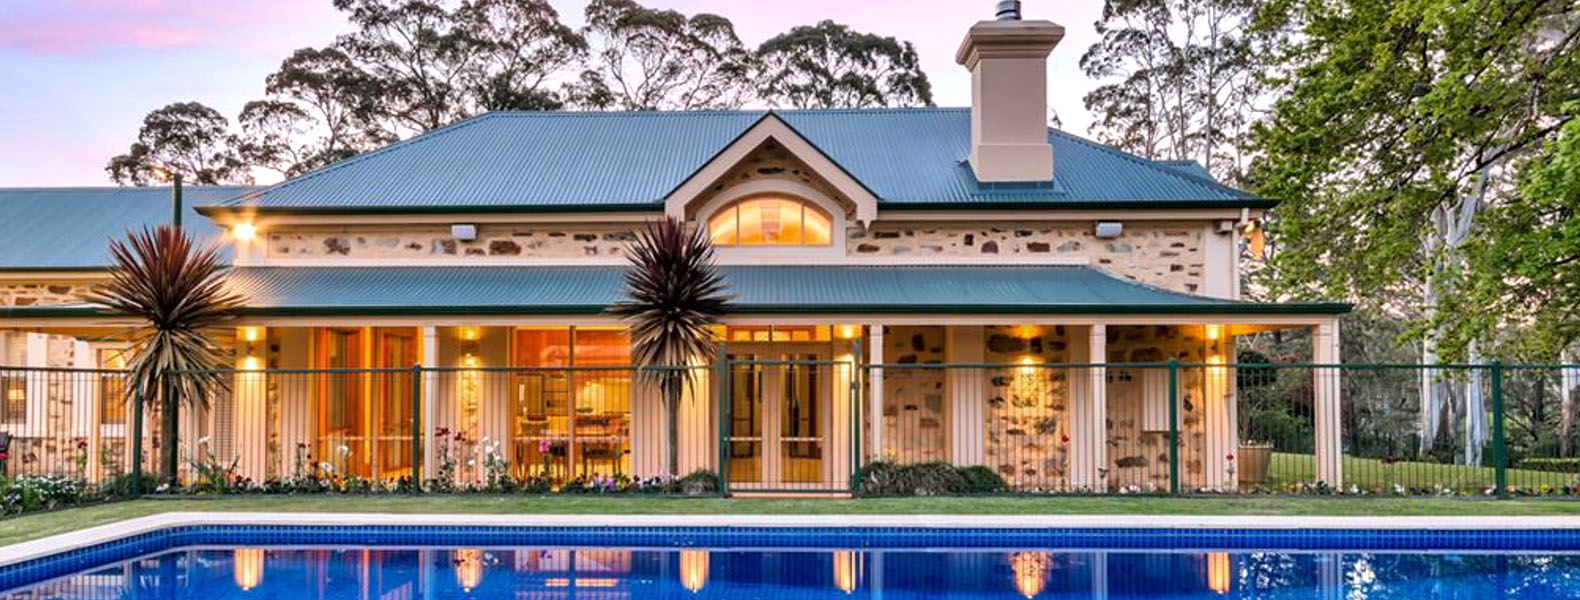 Dee-Anne Hunt Lifestyle Property Specialist Contact